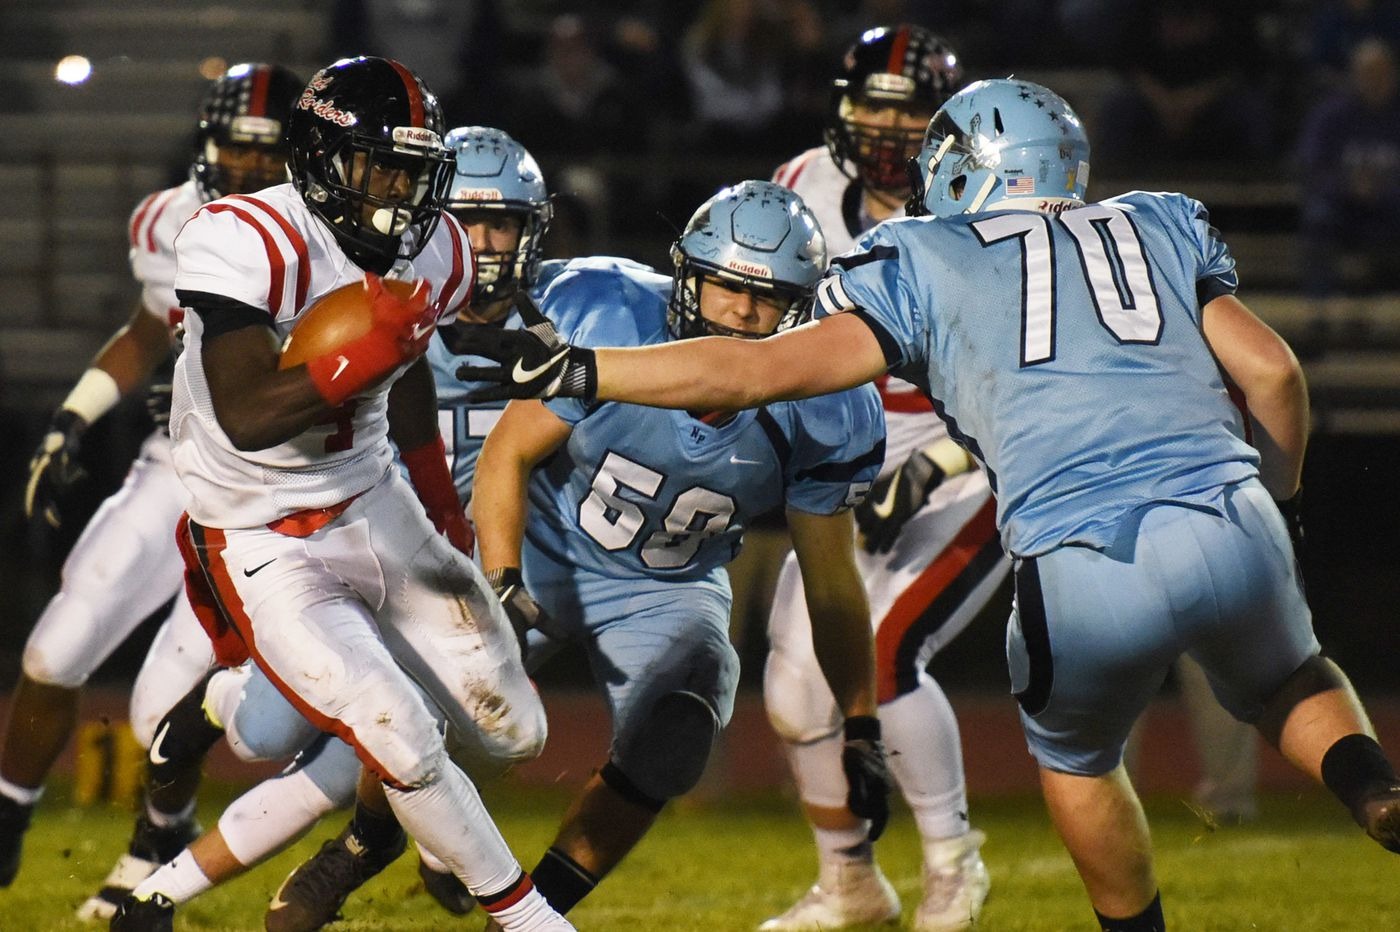 Coatesville-North Penn PIAA District 1 Class 6A final highlights football playoff slate